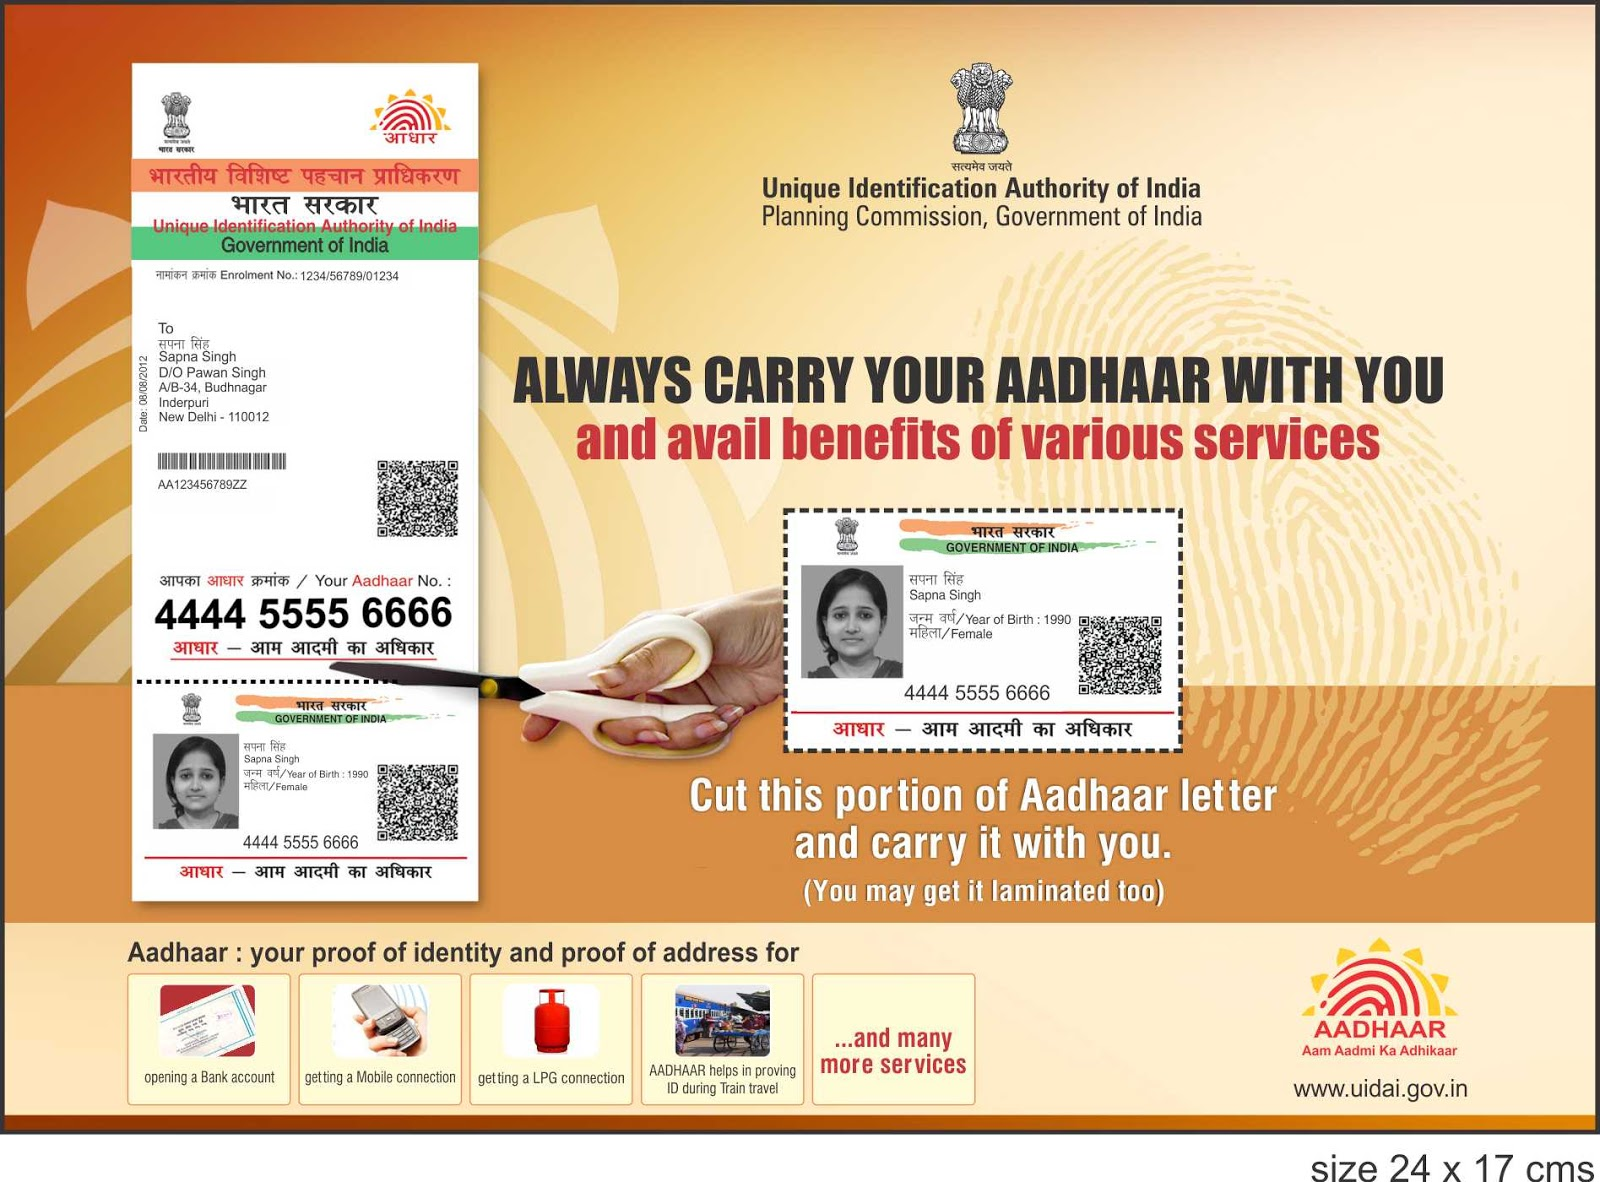 Shortcomings Of Aadhaar and How It Fell Through The Roof